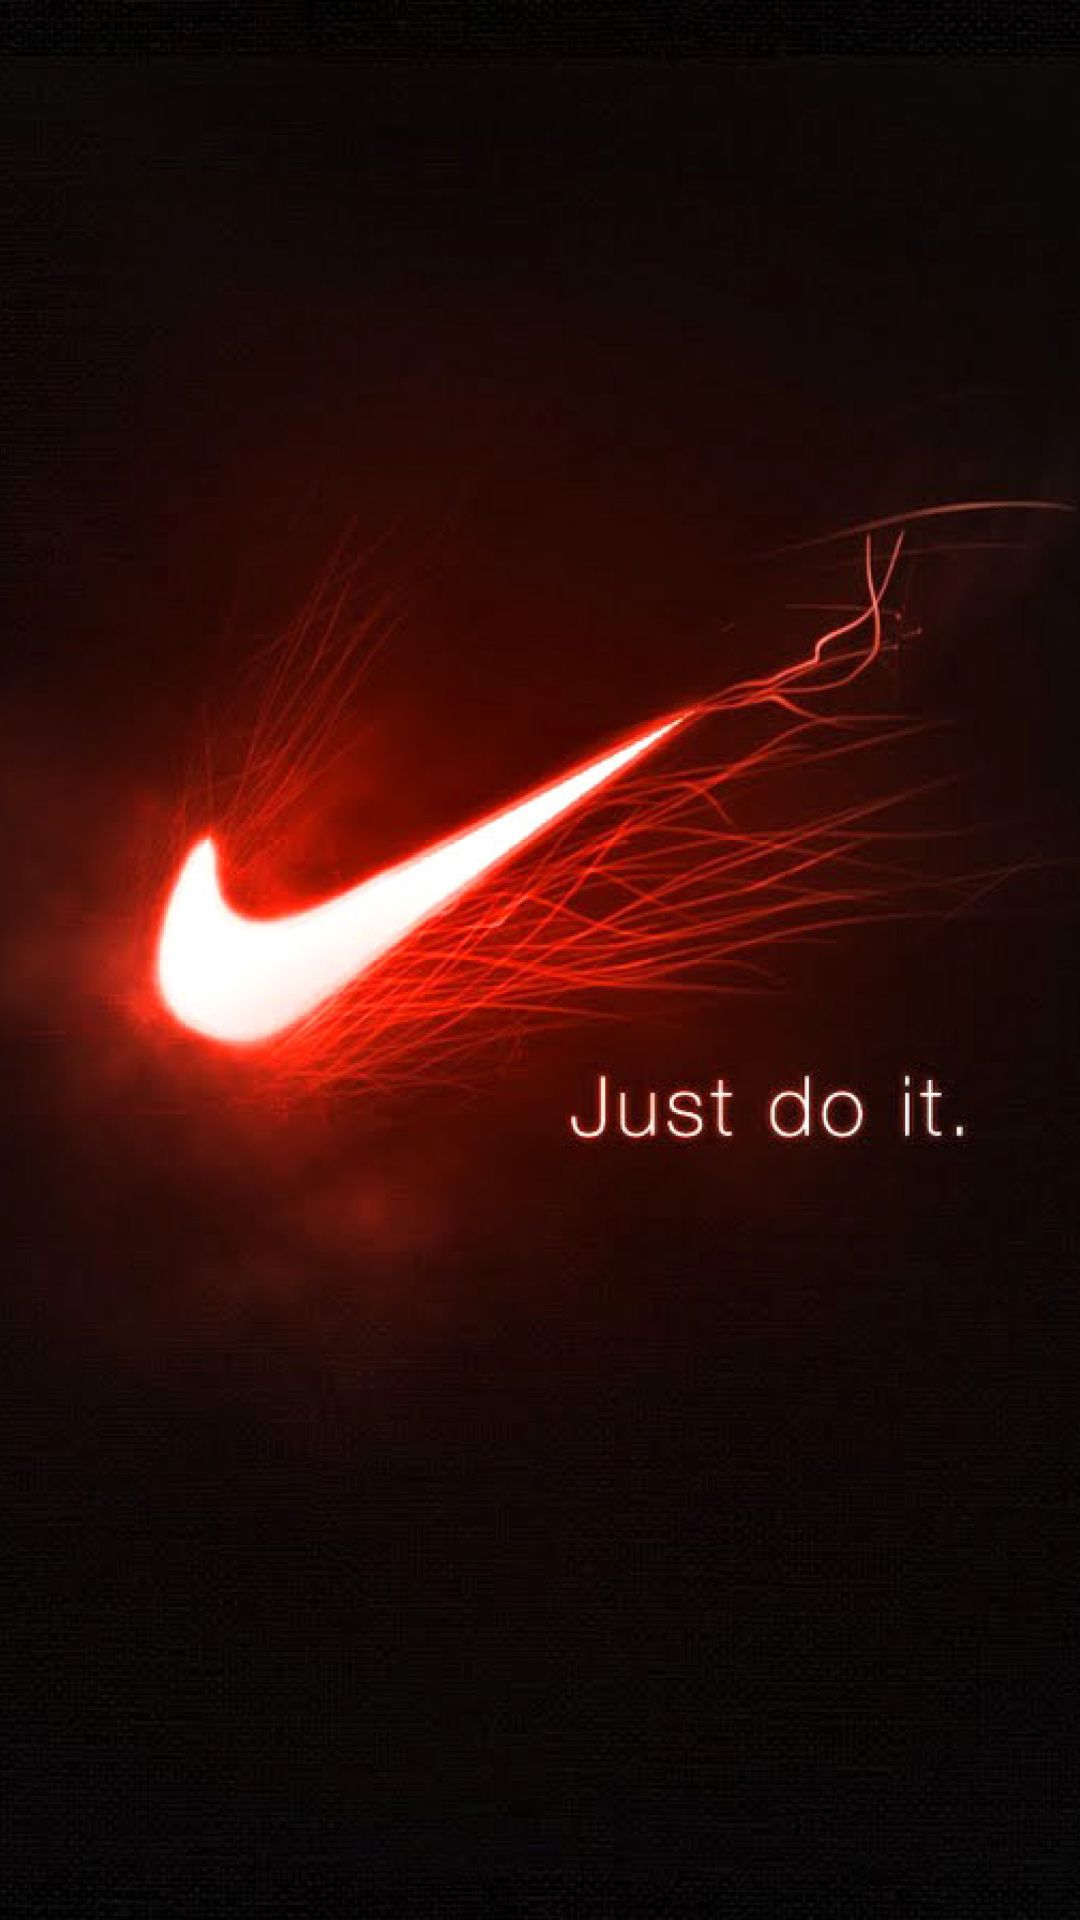 Just Do It iPhone Wallpapers - Top Free ...